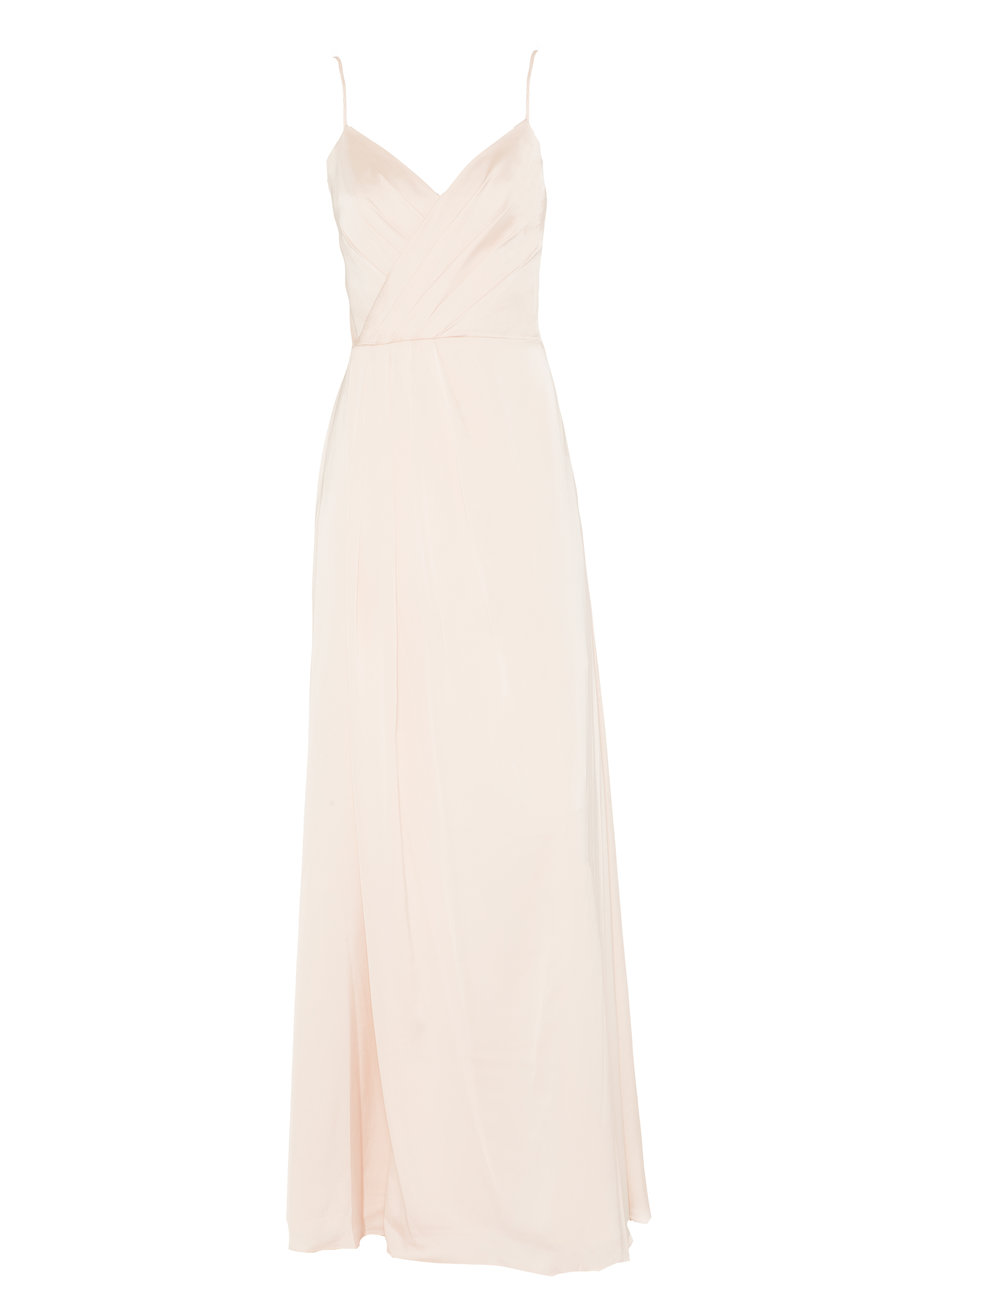 Monique Lhuillier 450496 Blush Sateen